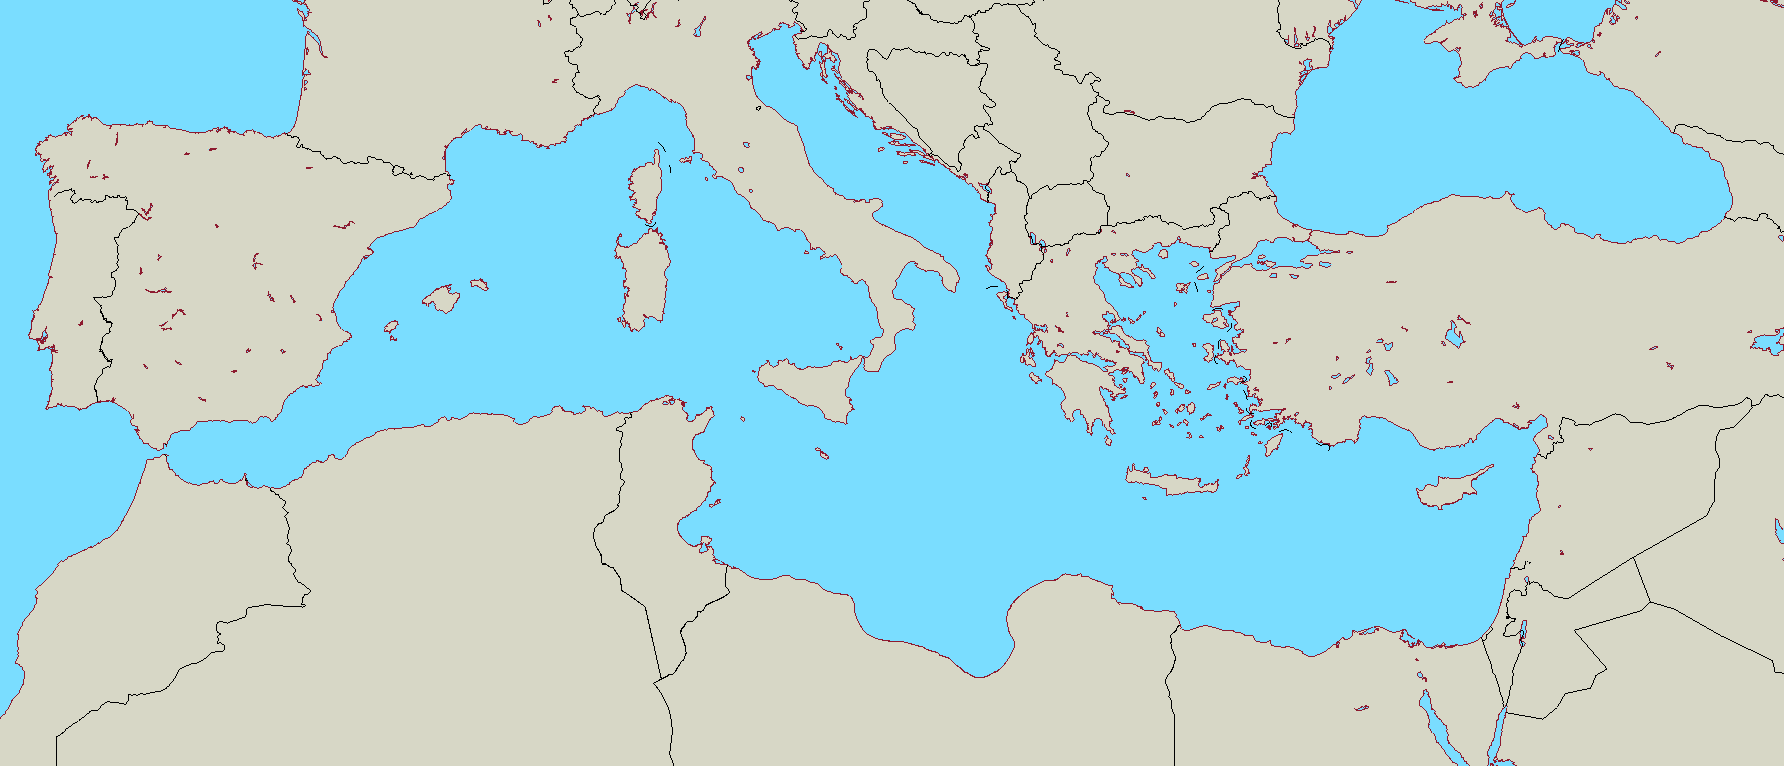 Blank Map Of Europe And Mediterranean